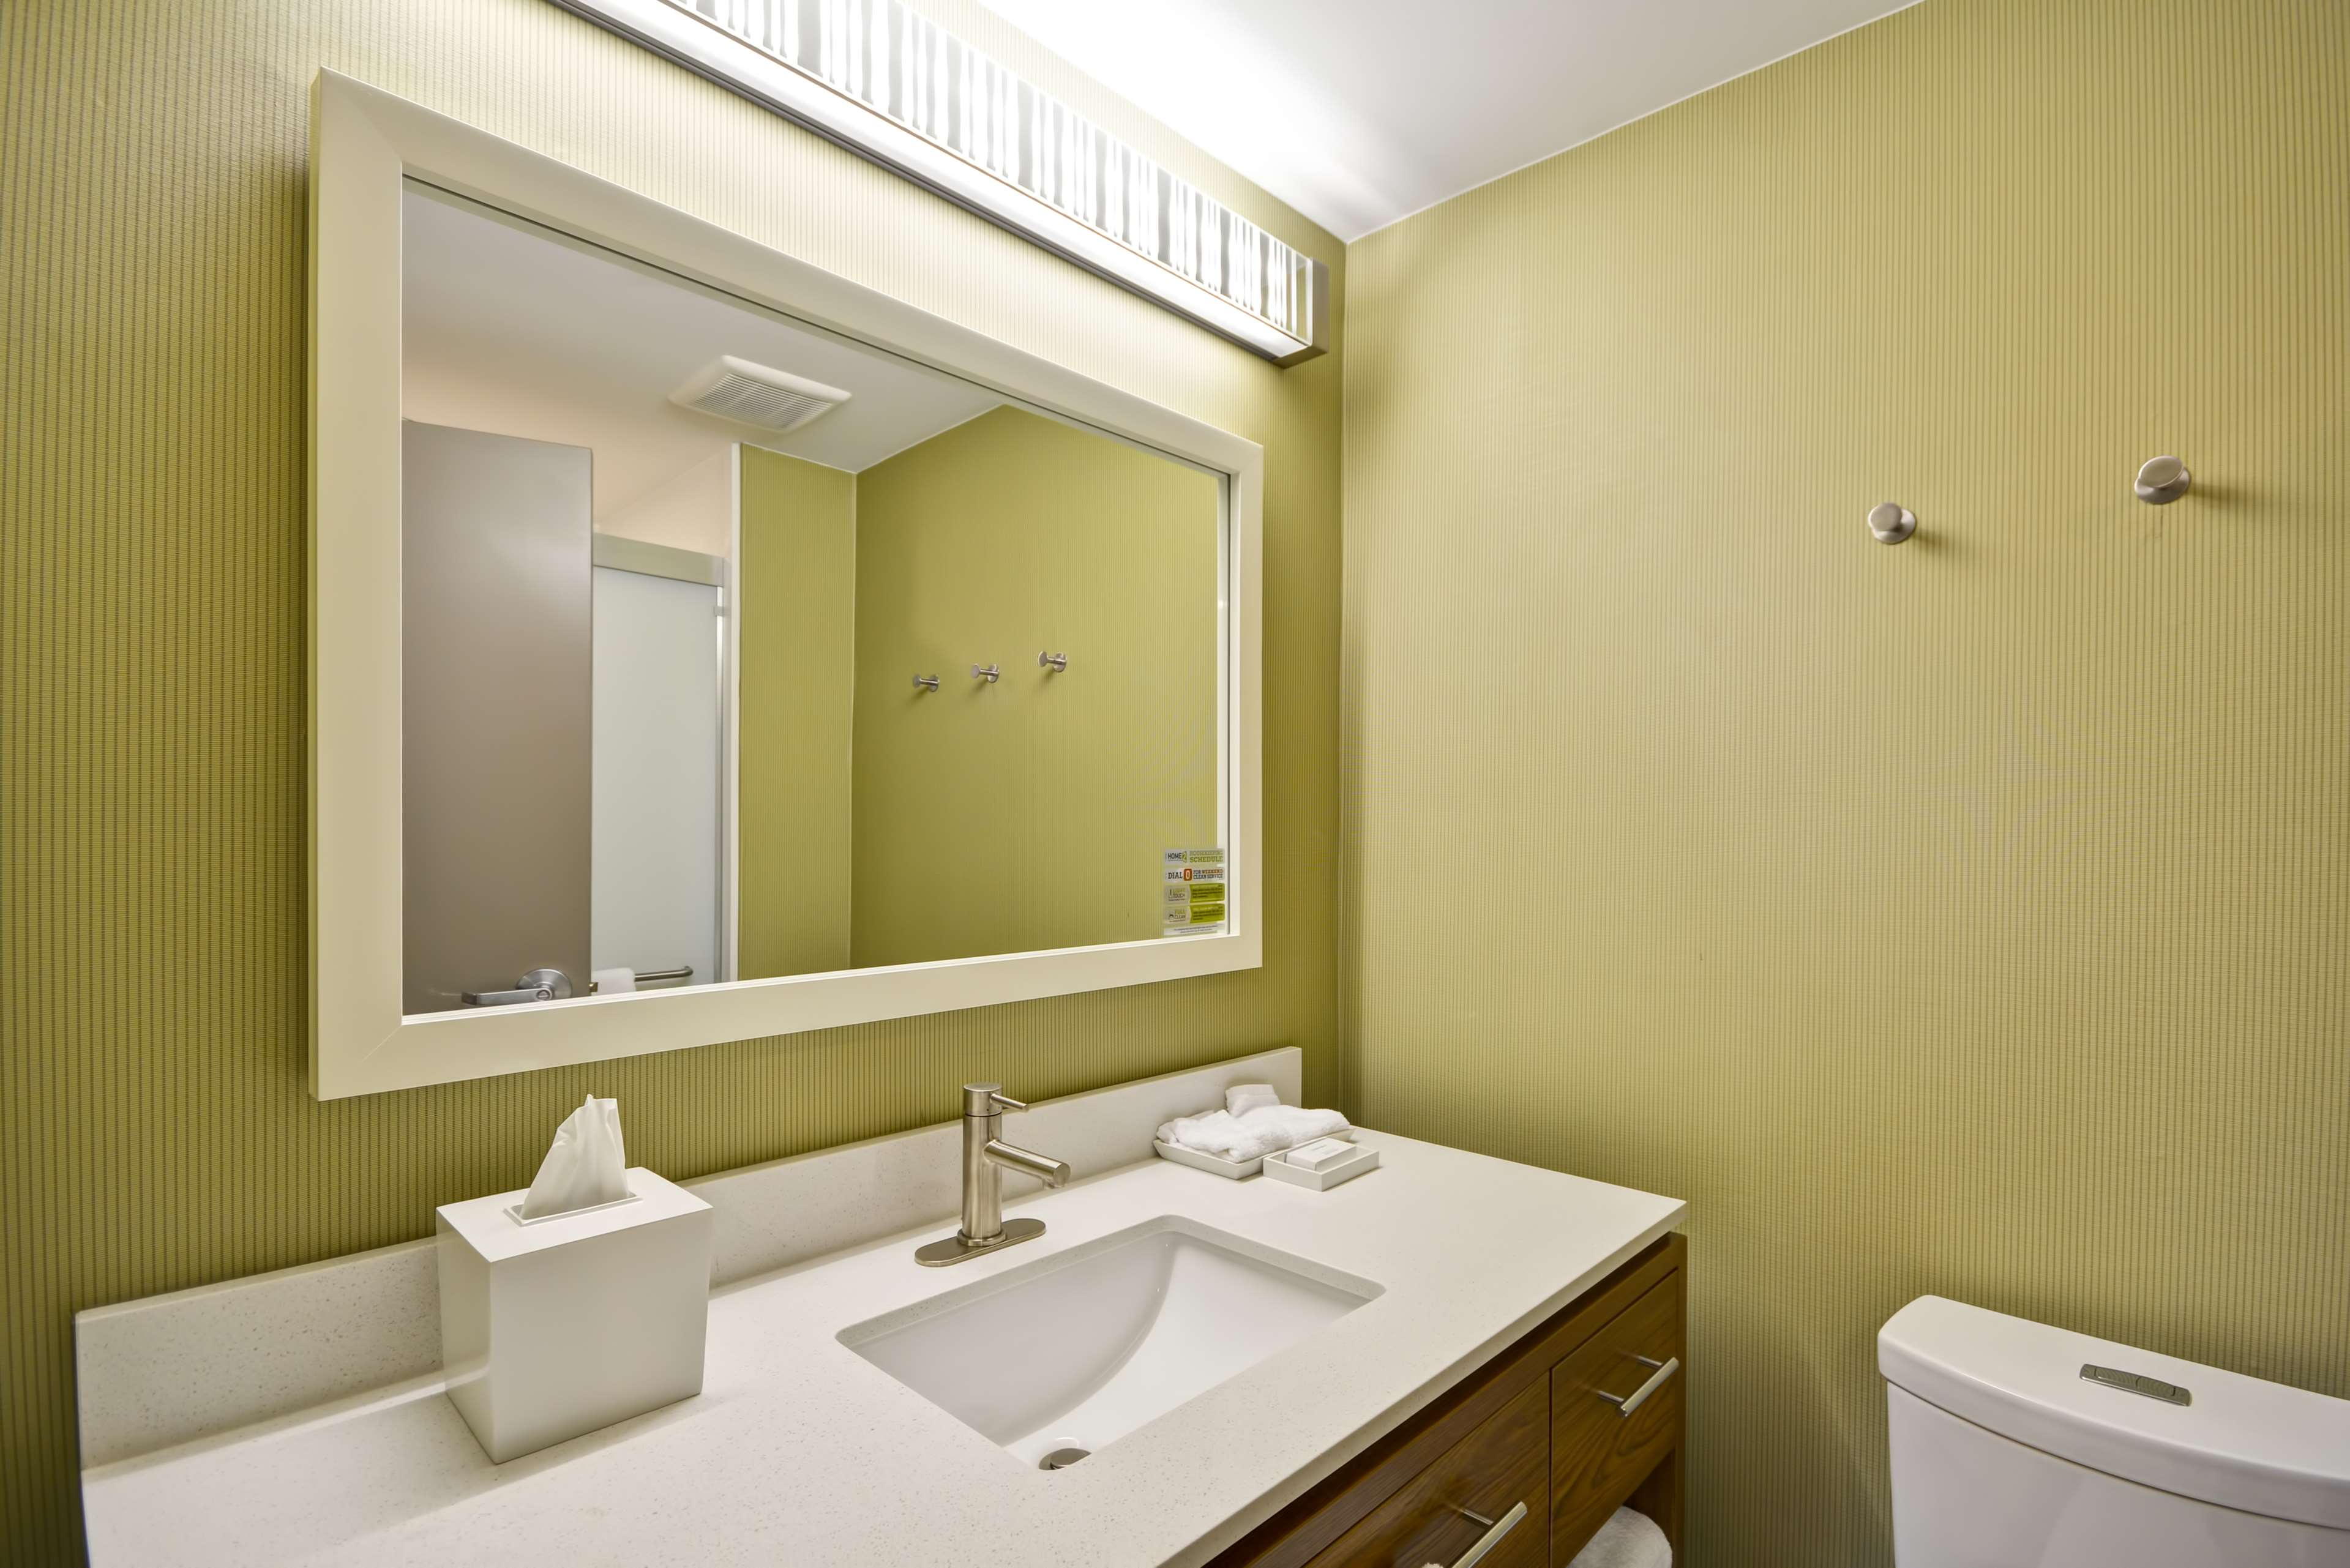 Home2 Suites by Hilton Rock Hill image 39